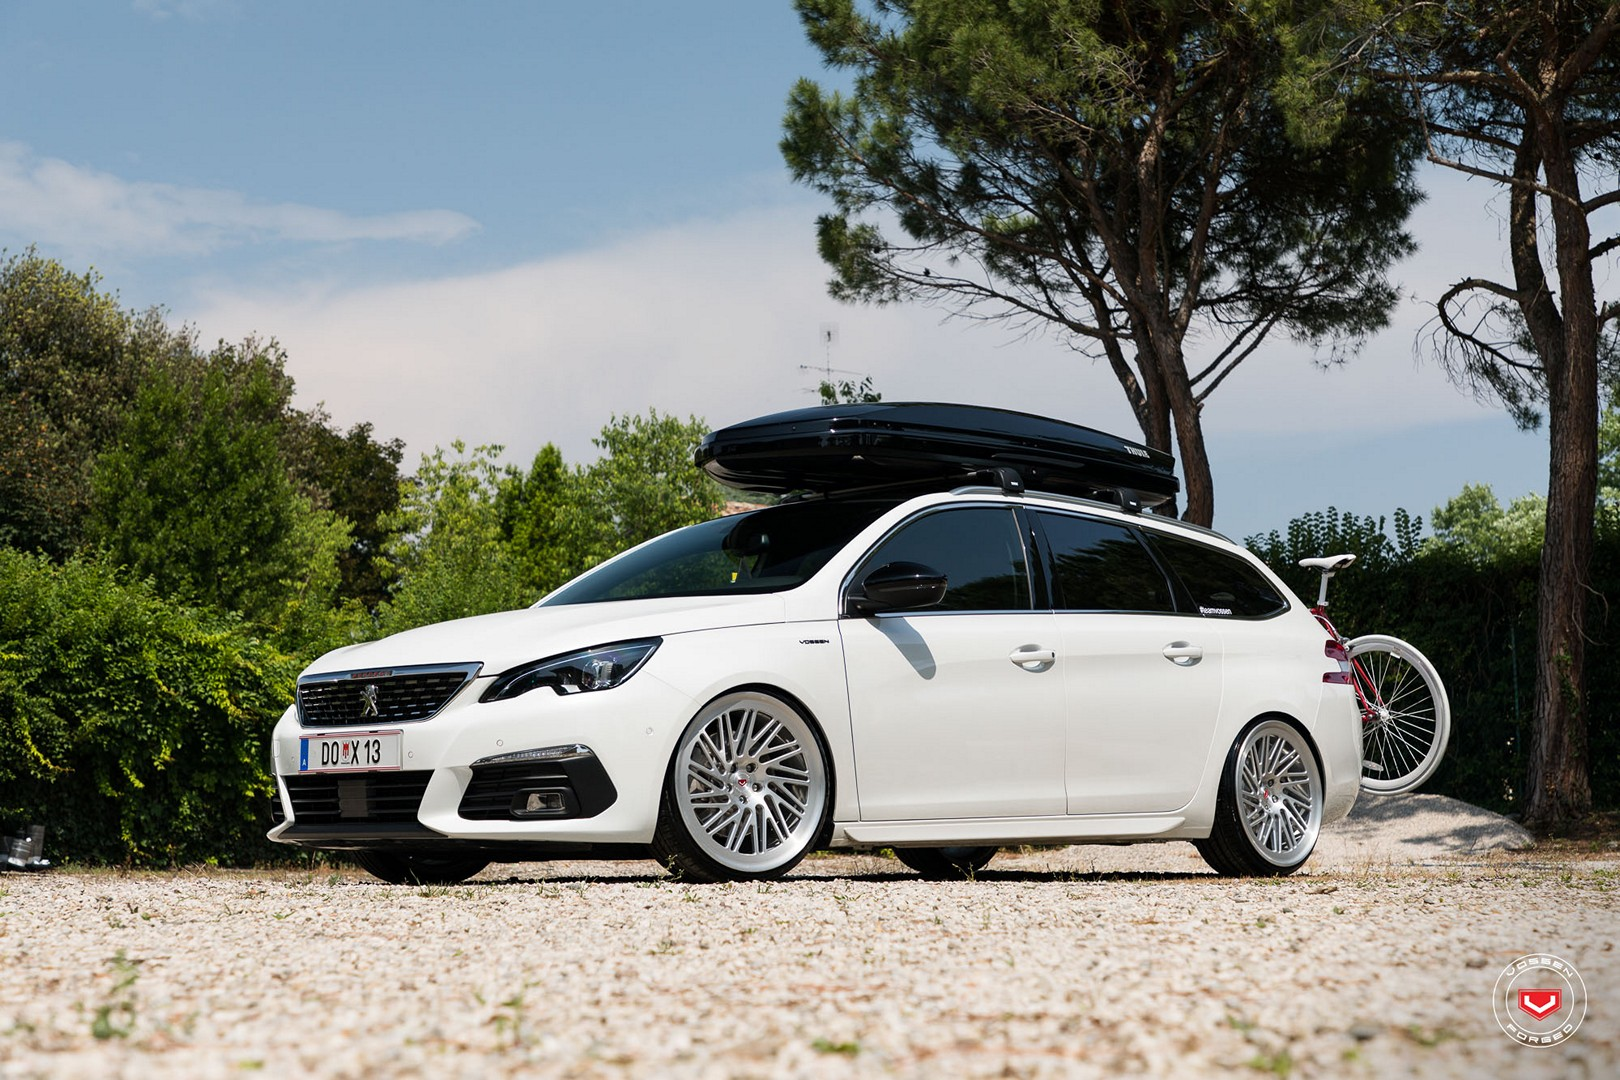 Peugeot 308 Sw Lowered On Vossen Wheels Autoevolution